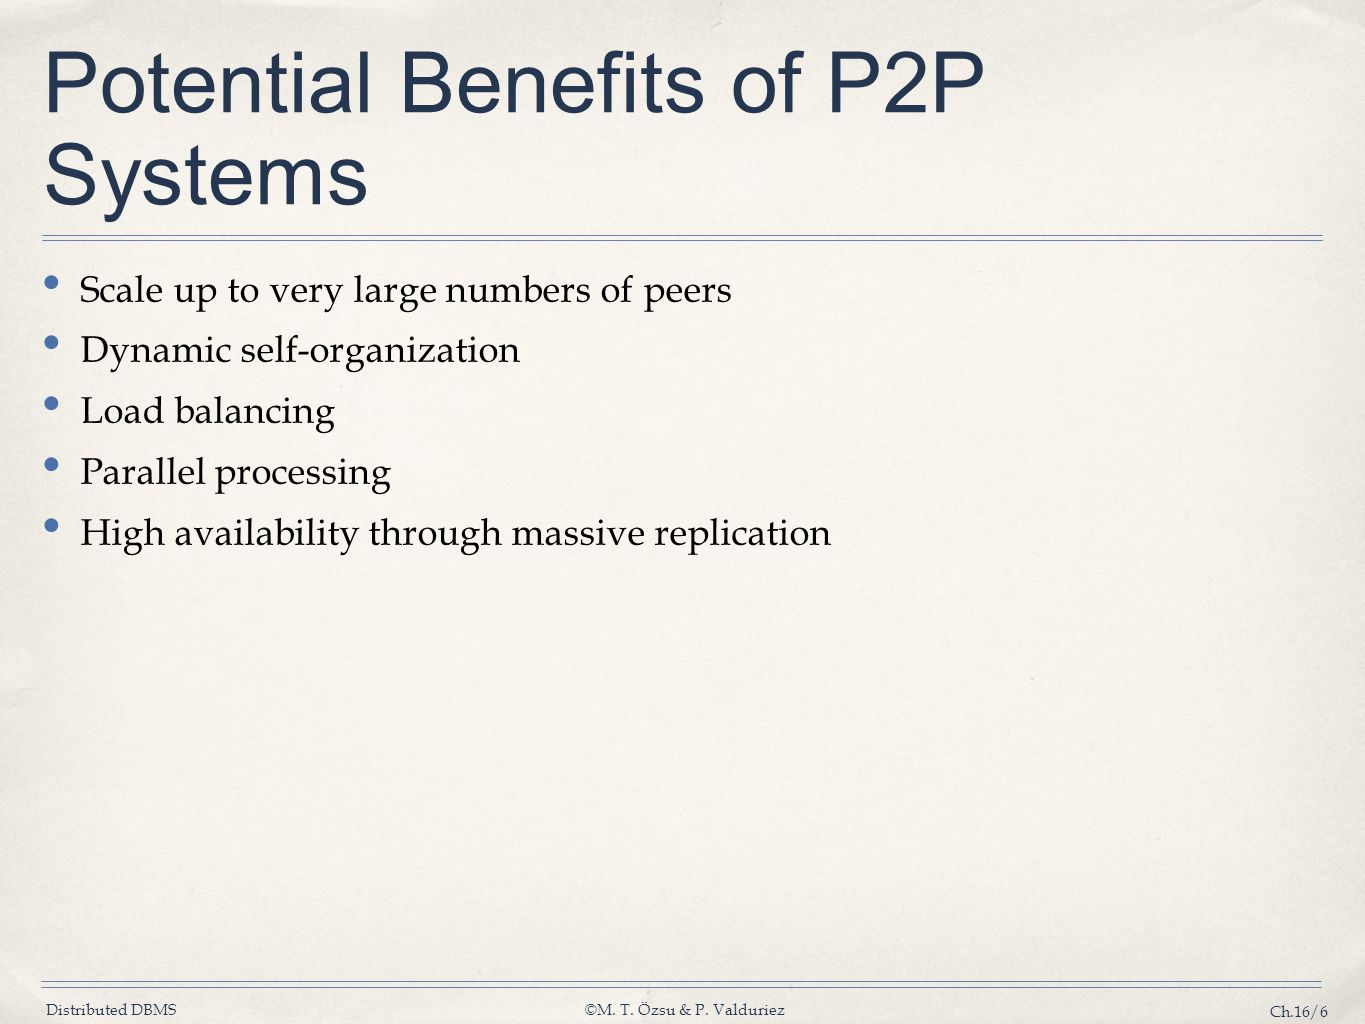 Potential Benefits of P2P Systems